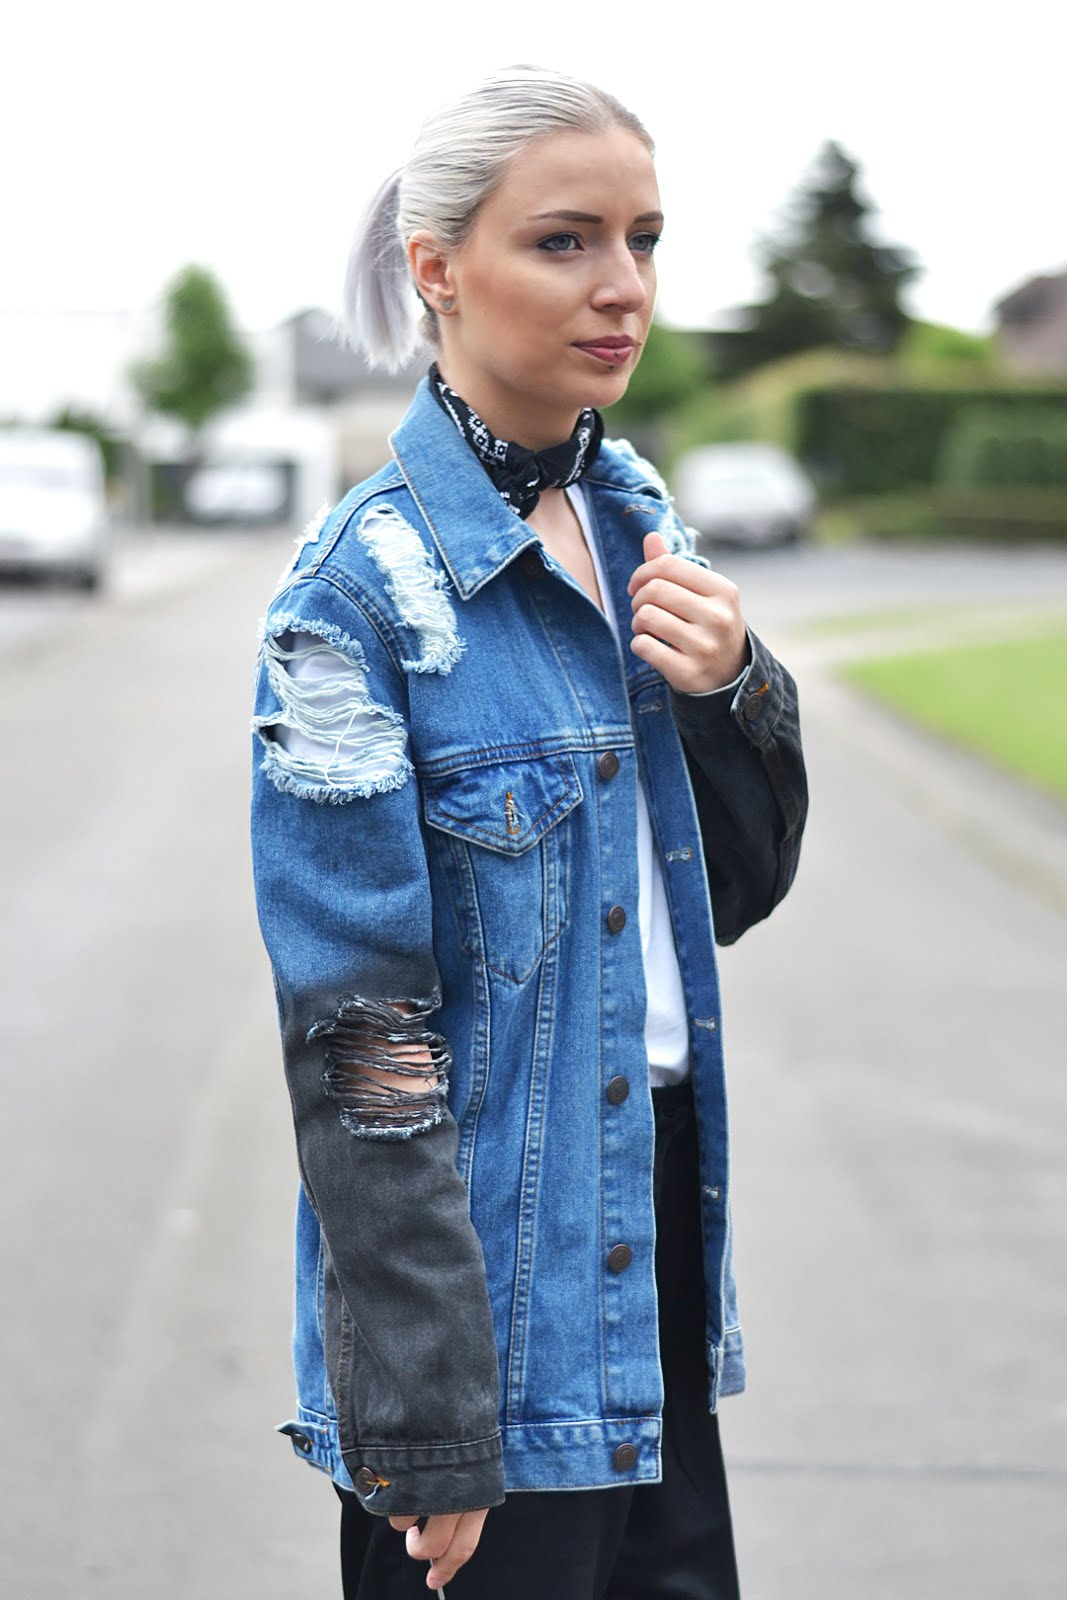 Vans x nintendo sneakers, ripped denim, asos, joggers, bandana, neck scarf, outfit, street style, belgian blogger, belgische mode blogger